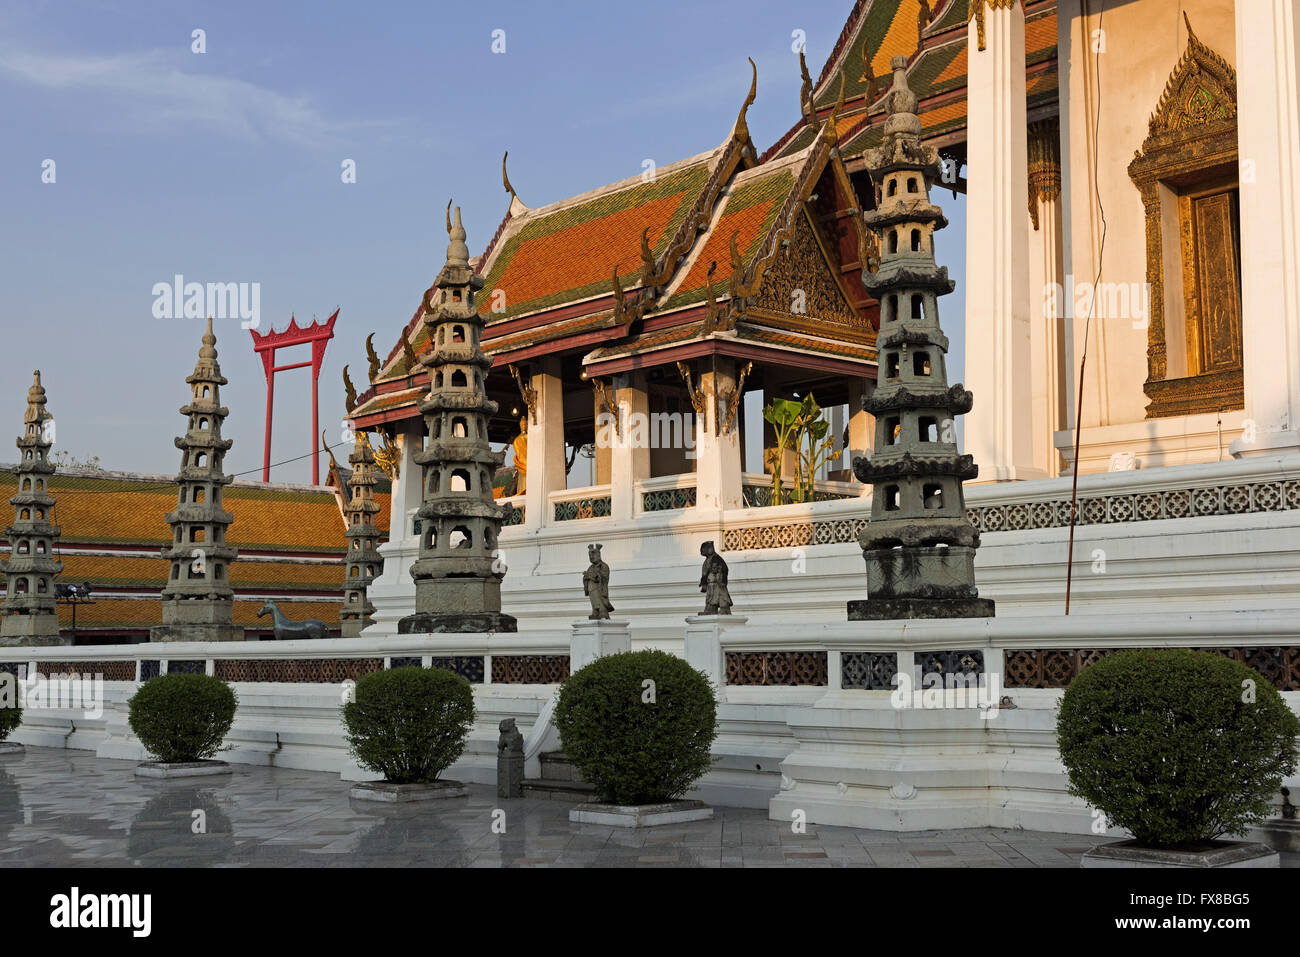 Wat Suthat and Giant Swing Bangkok Thailand - Stock Image